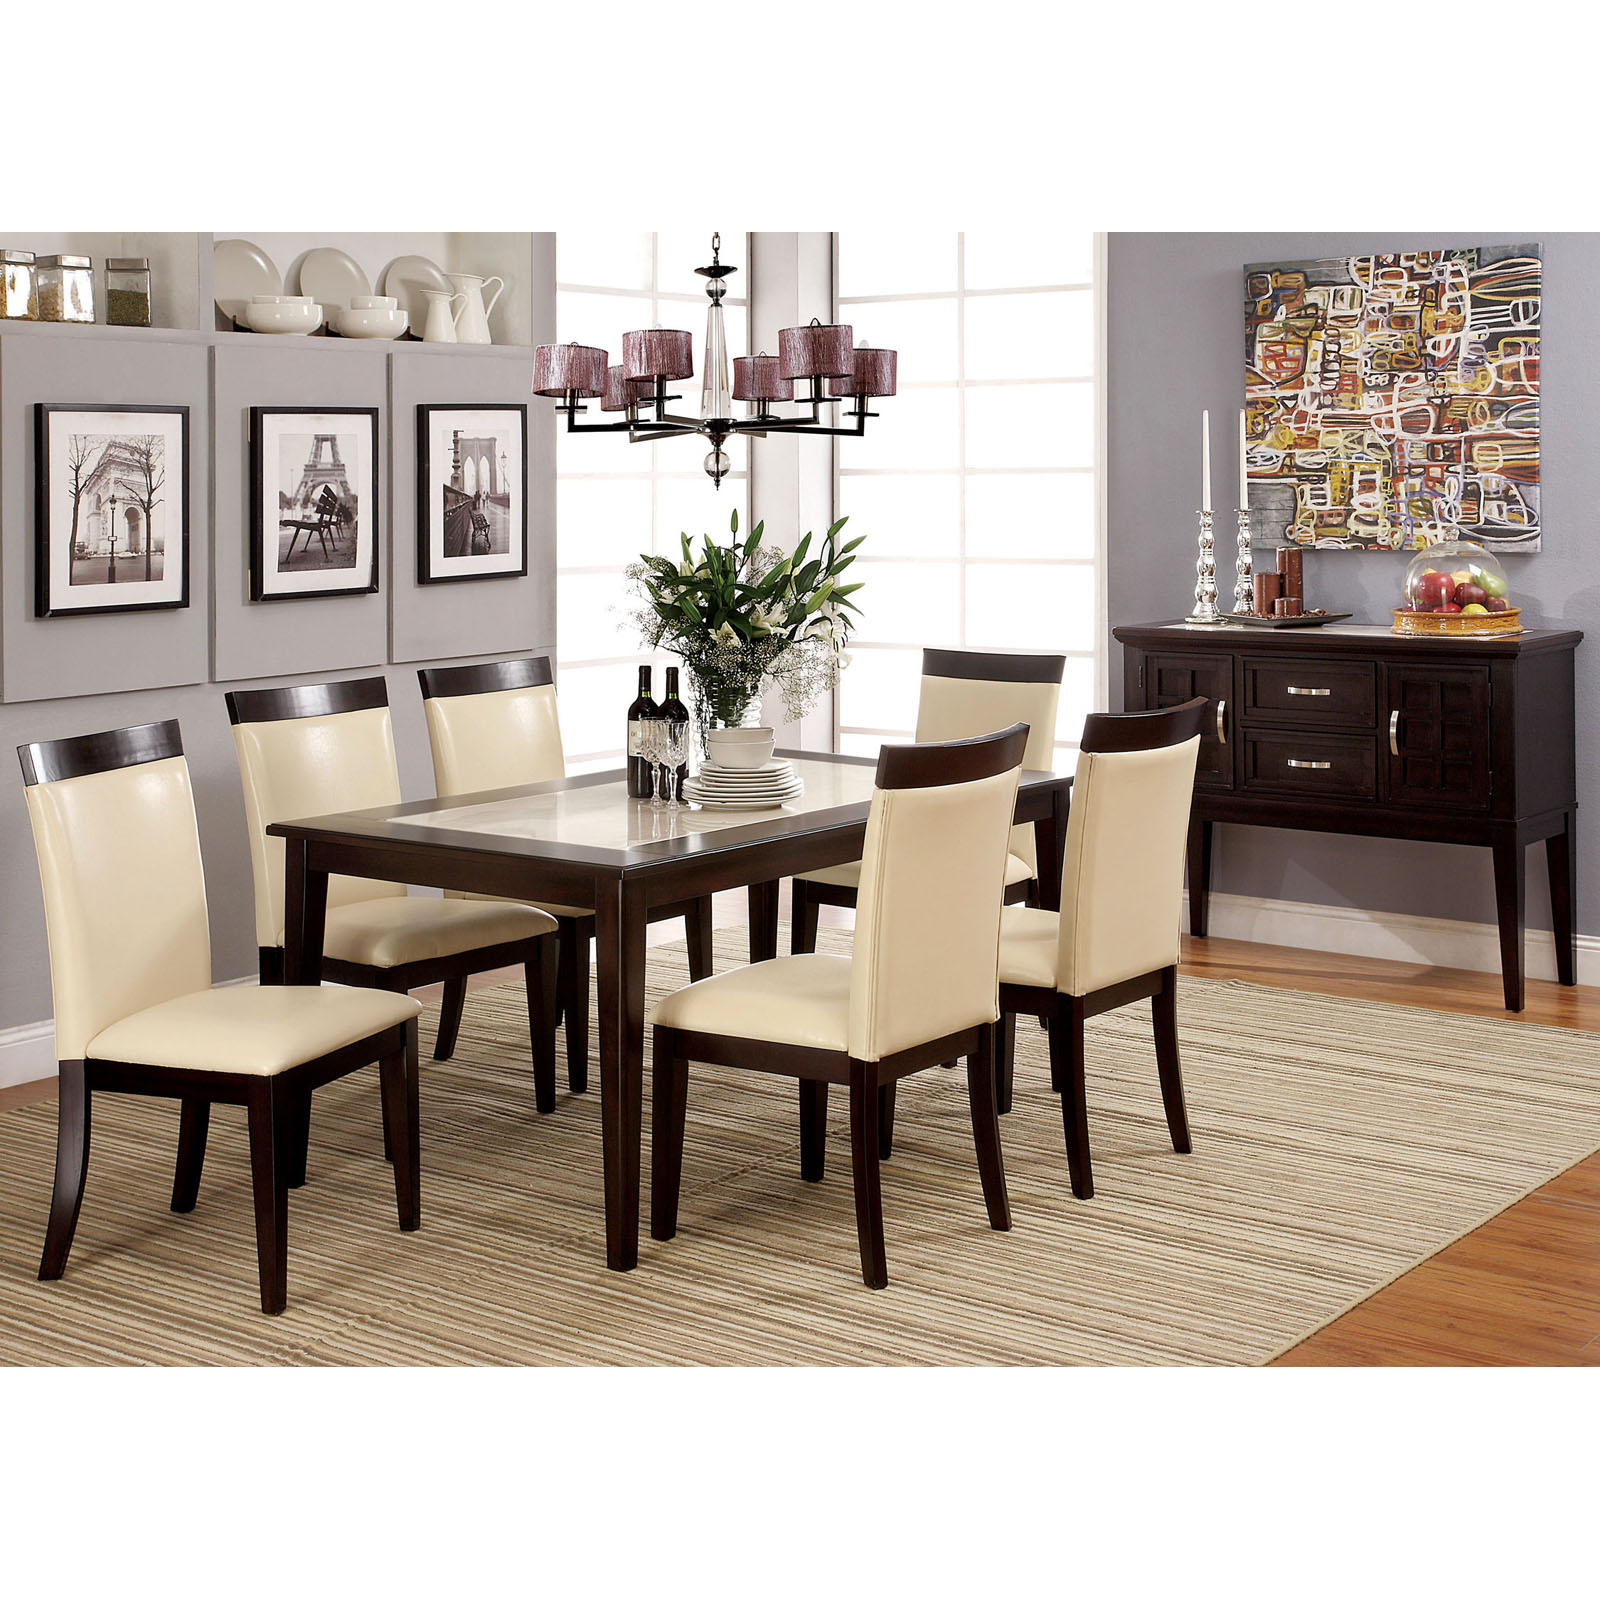 Beau Furniture Of America Lotties 7 Piece Faux Marble Dining Table Set |  Hayneedle